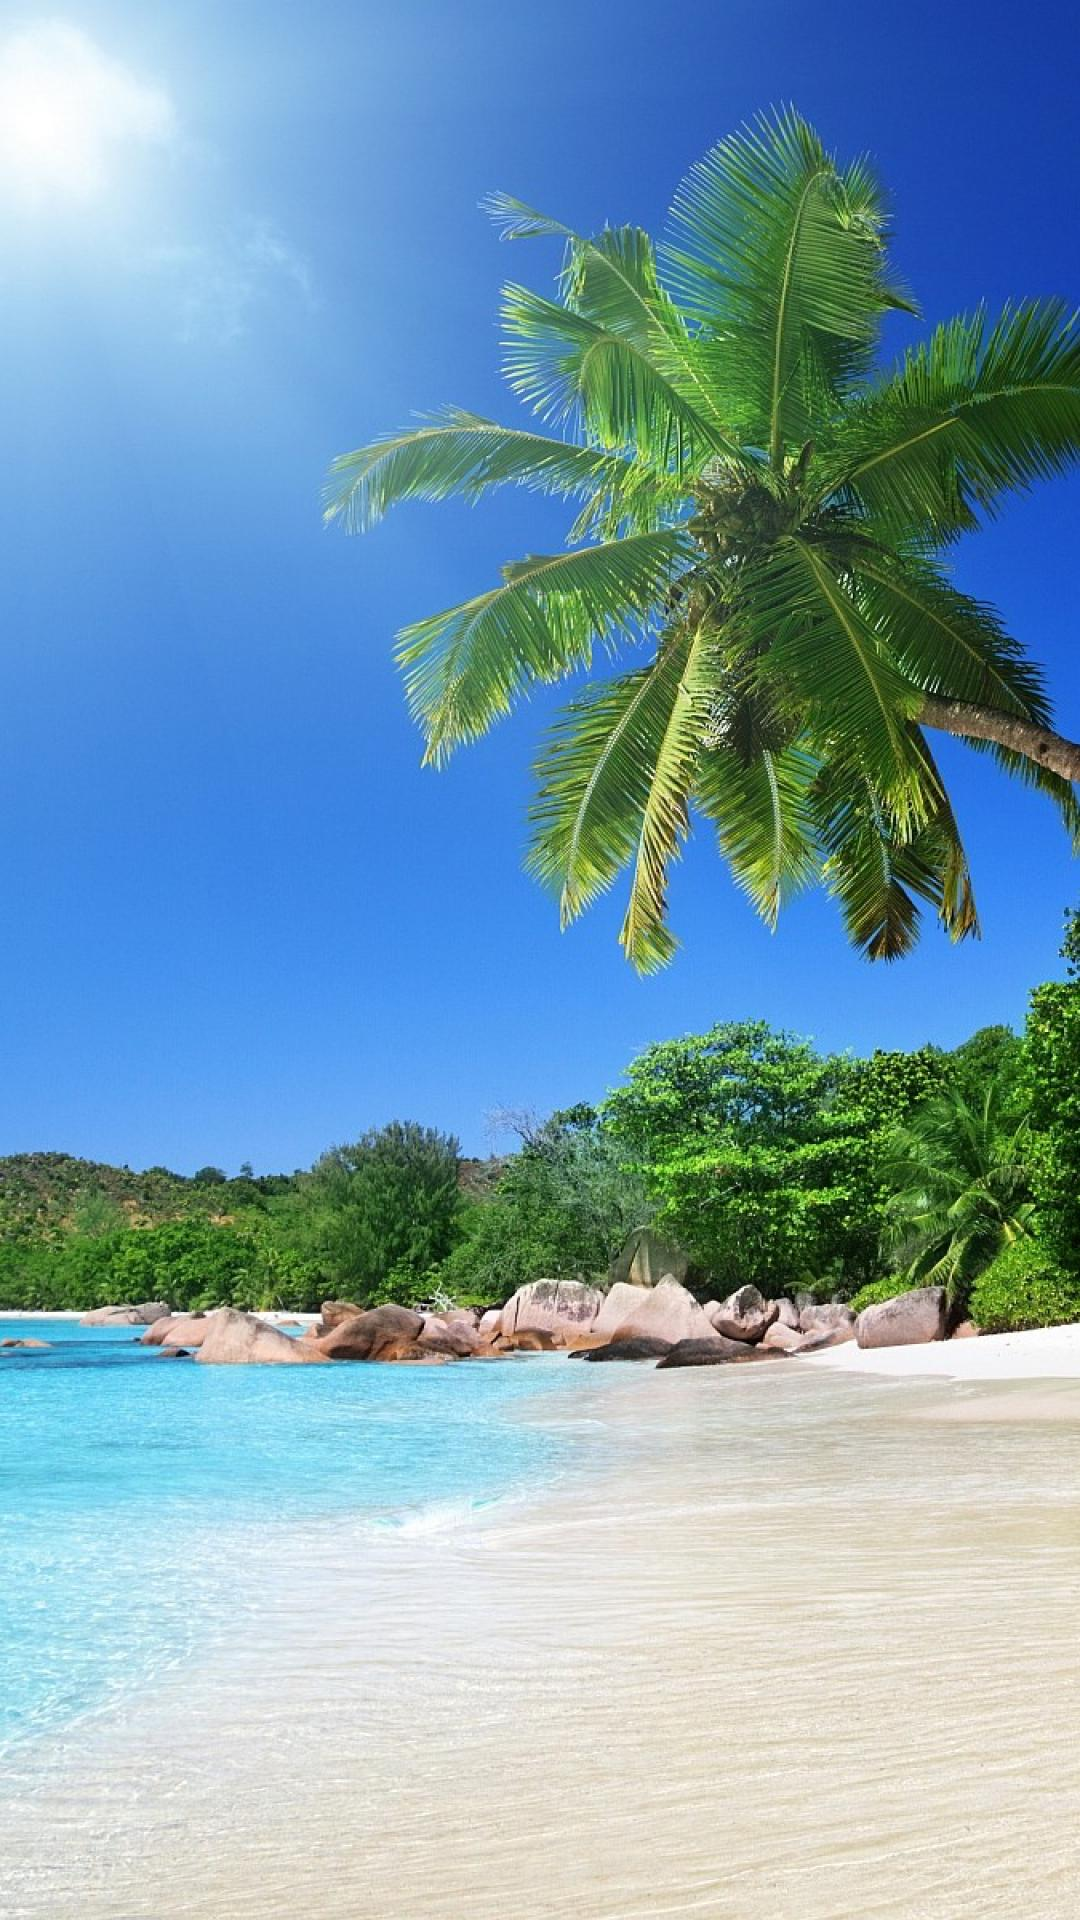 tropical beach scenes wallpaper